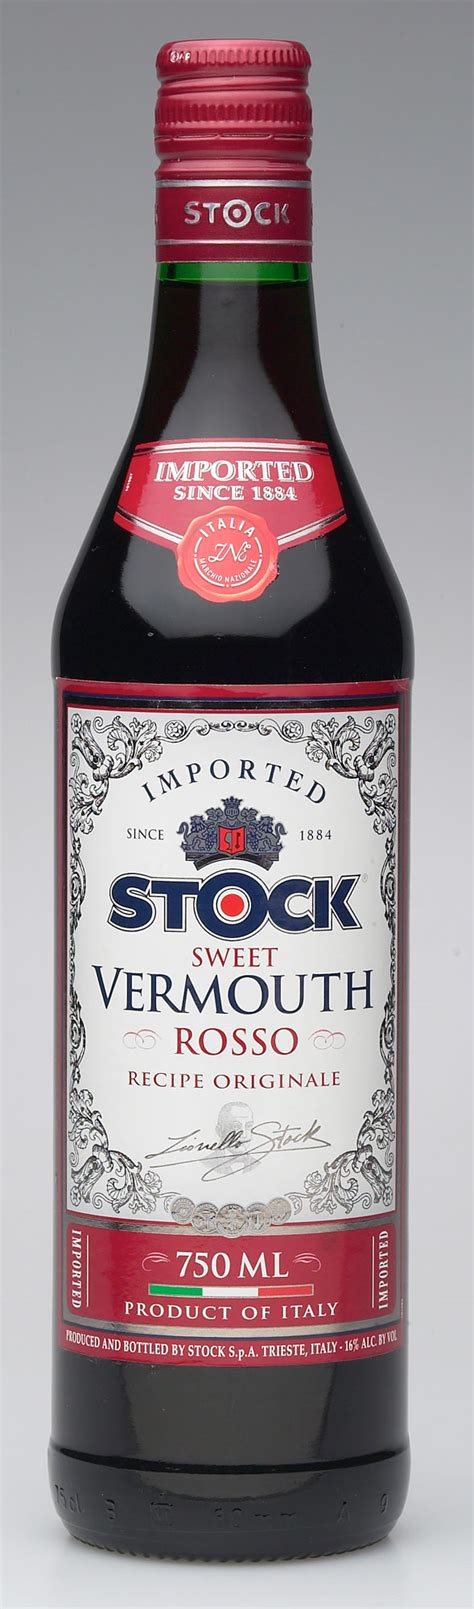 rosso vermouth vermouth by style